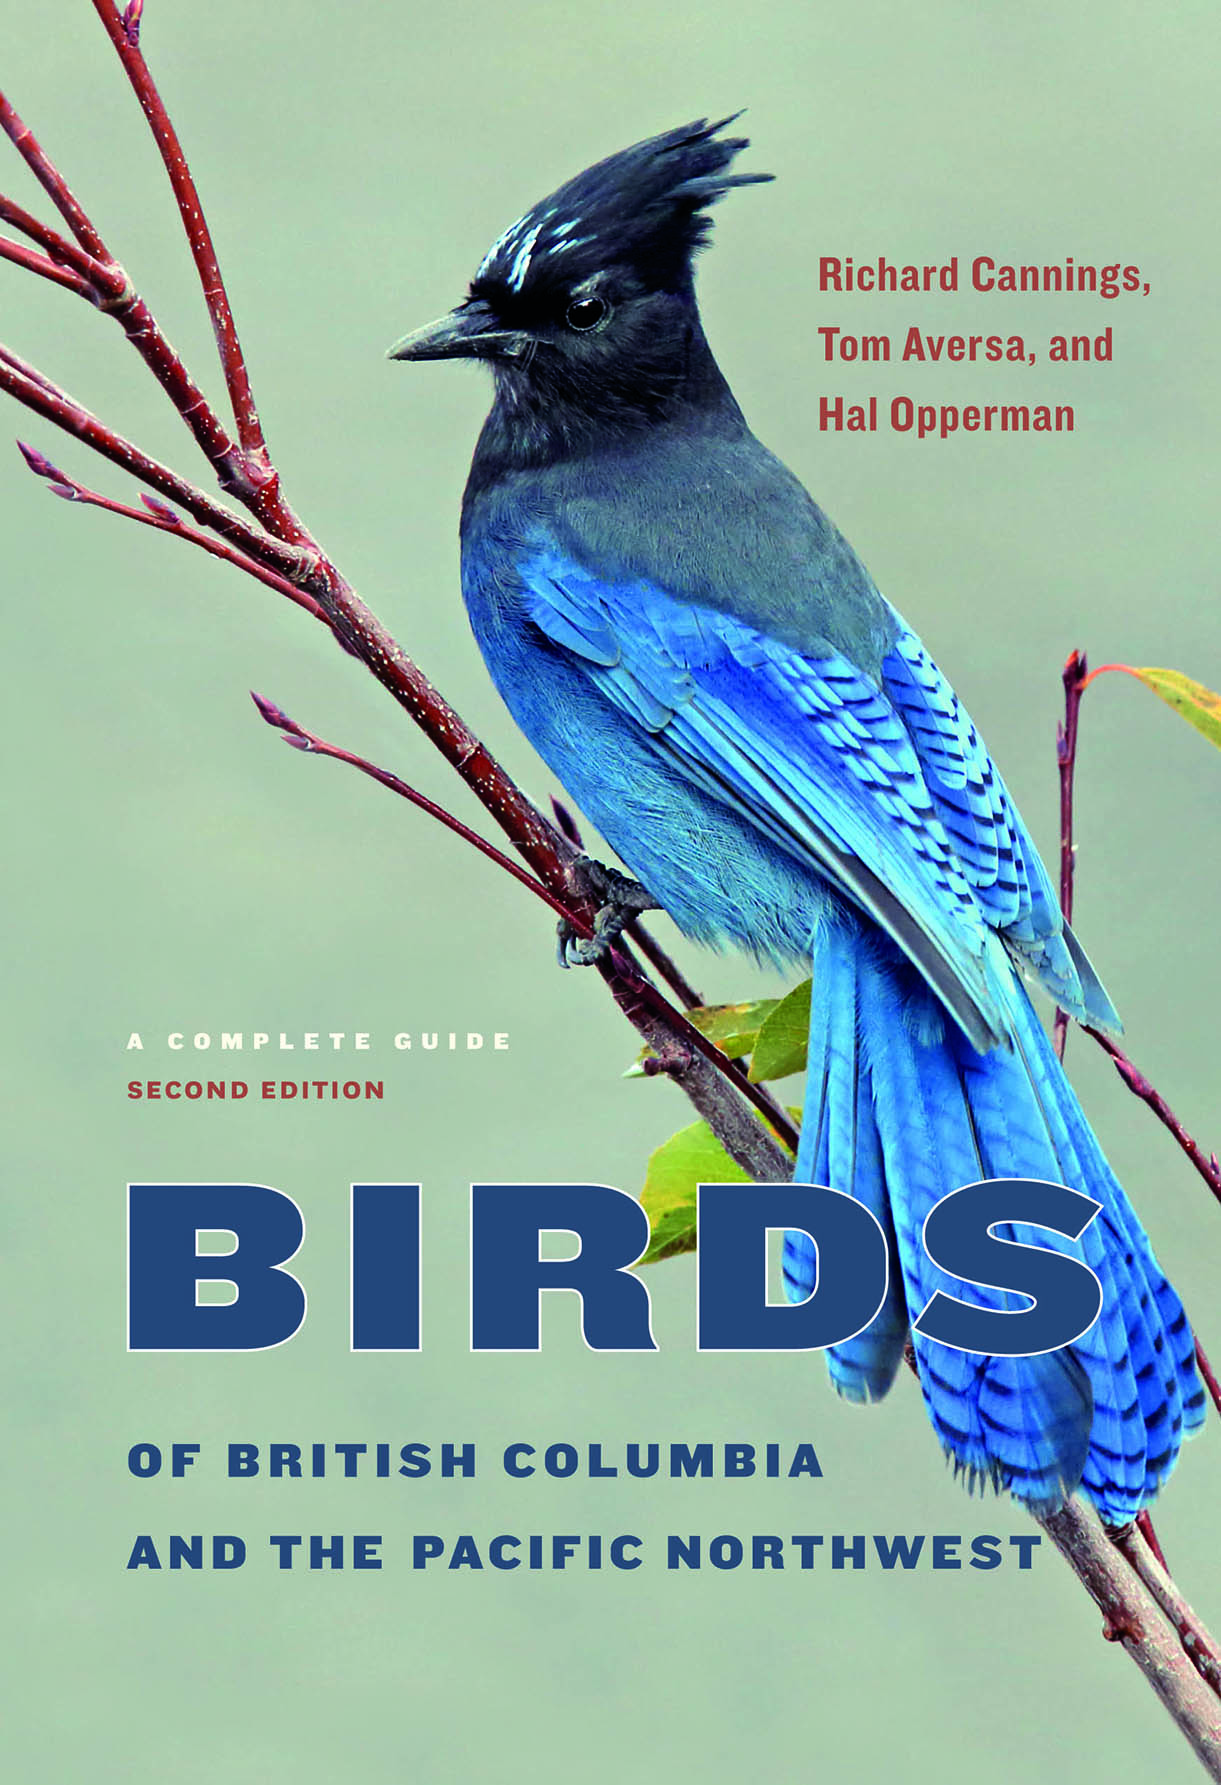 book cover with bird